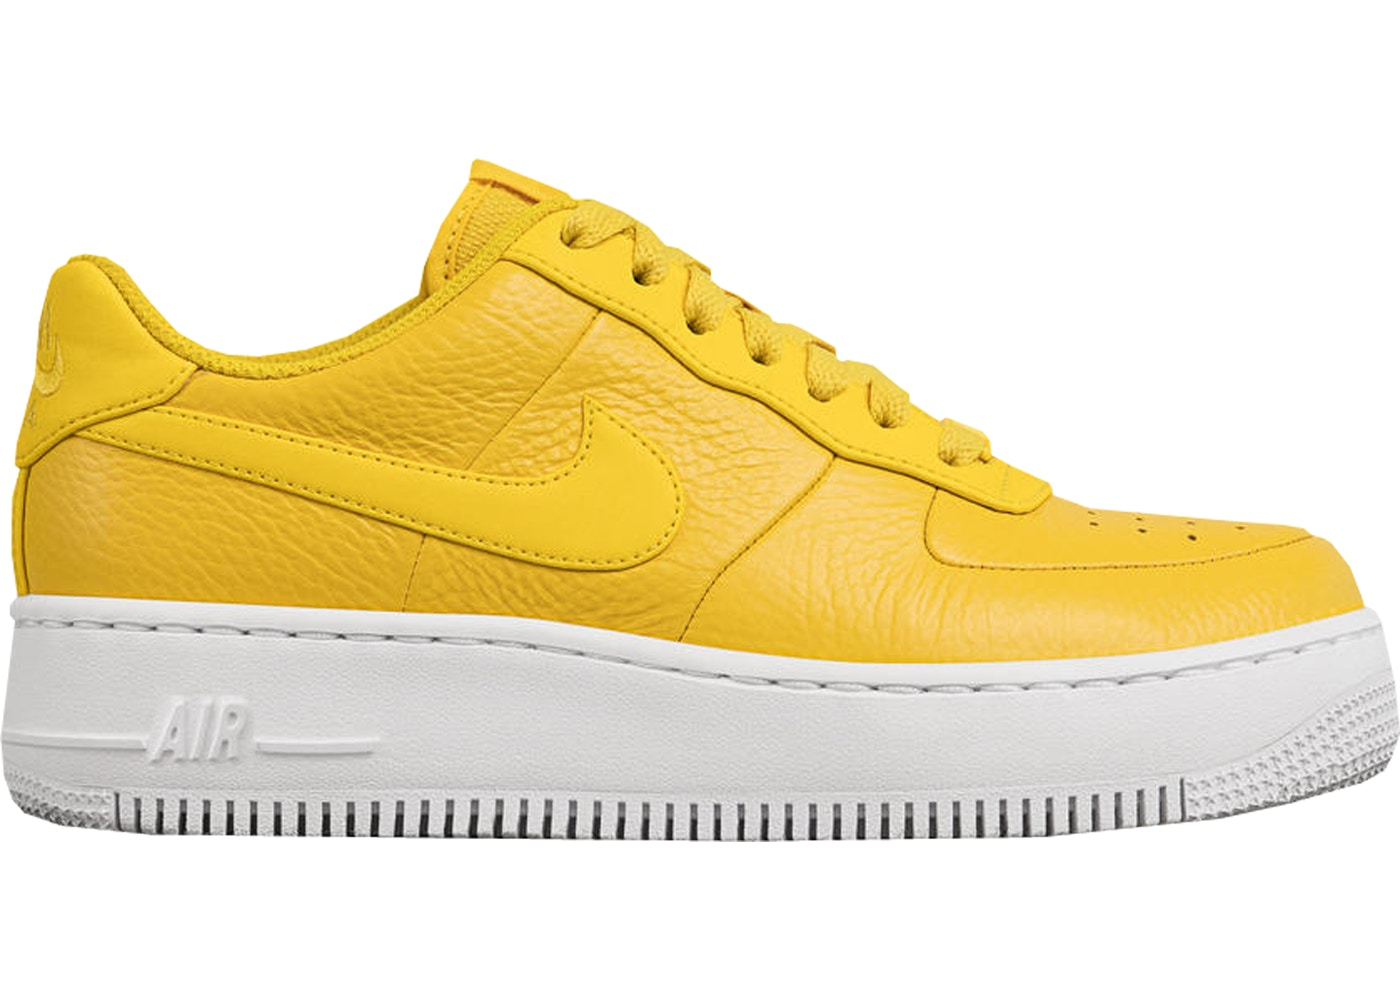 Nike Air Force 1 Upstep Low Bread & Butter Yellow (W) - Sneakers